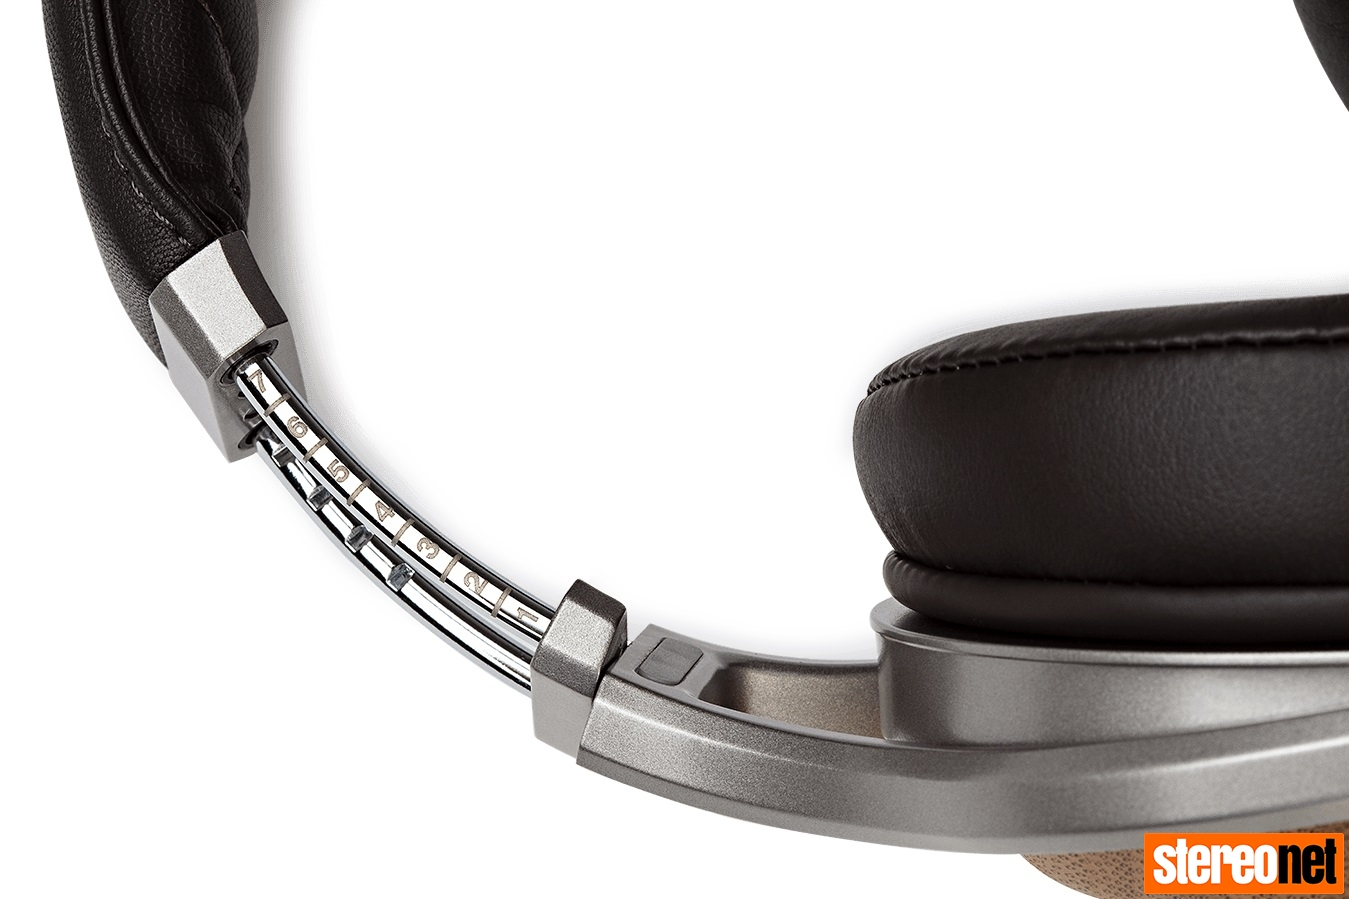 Denon AH-D9200 headphones detail